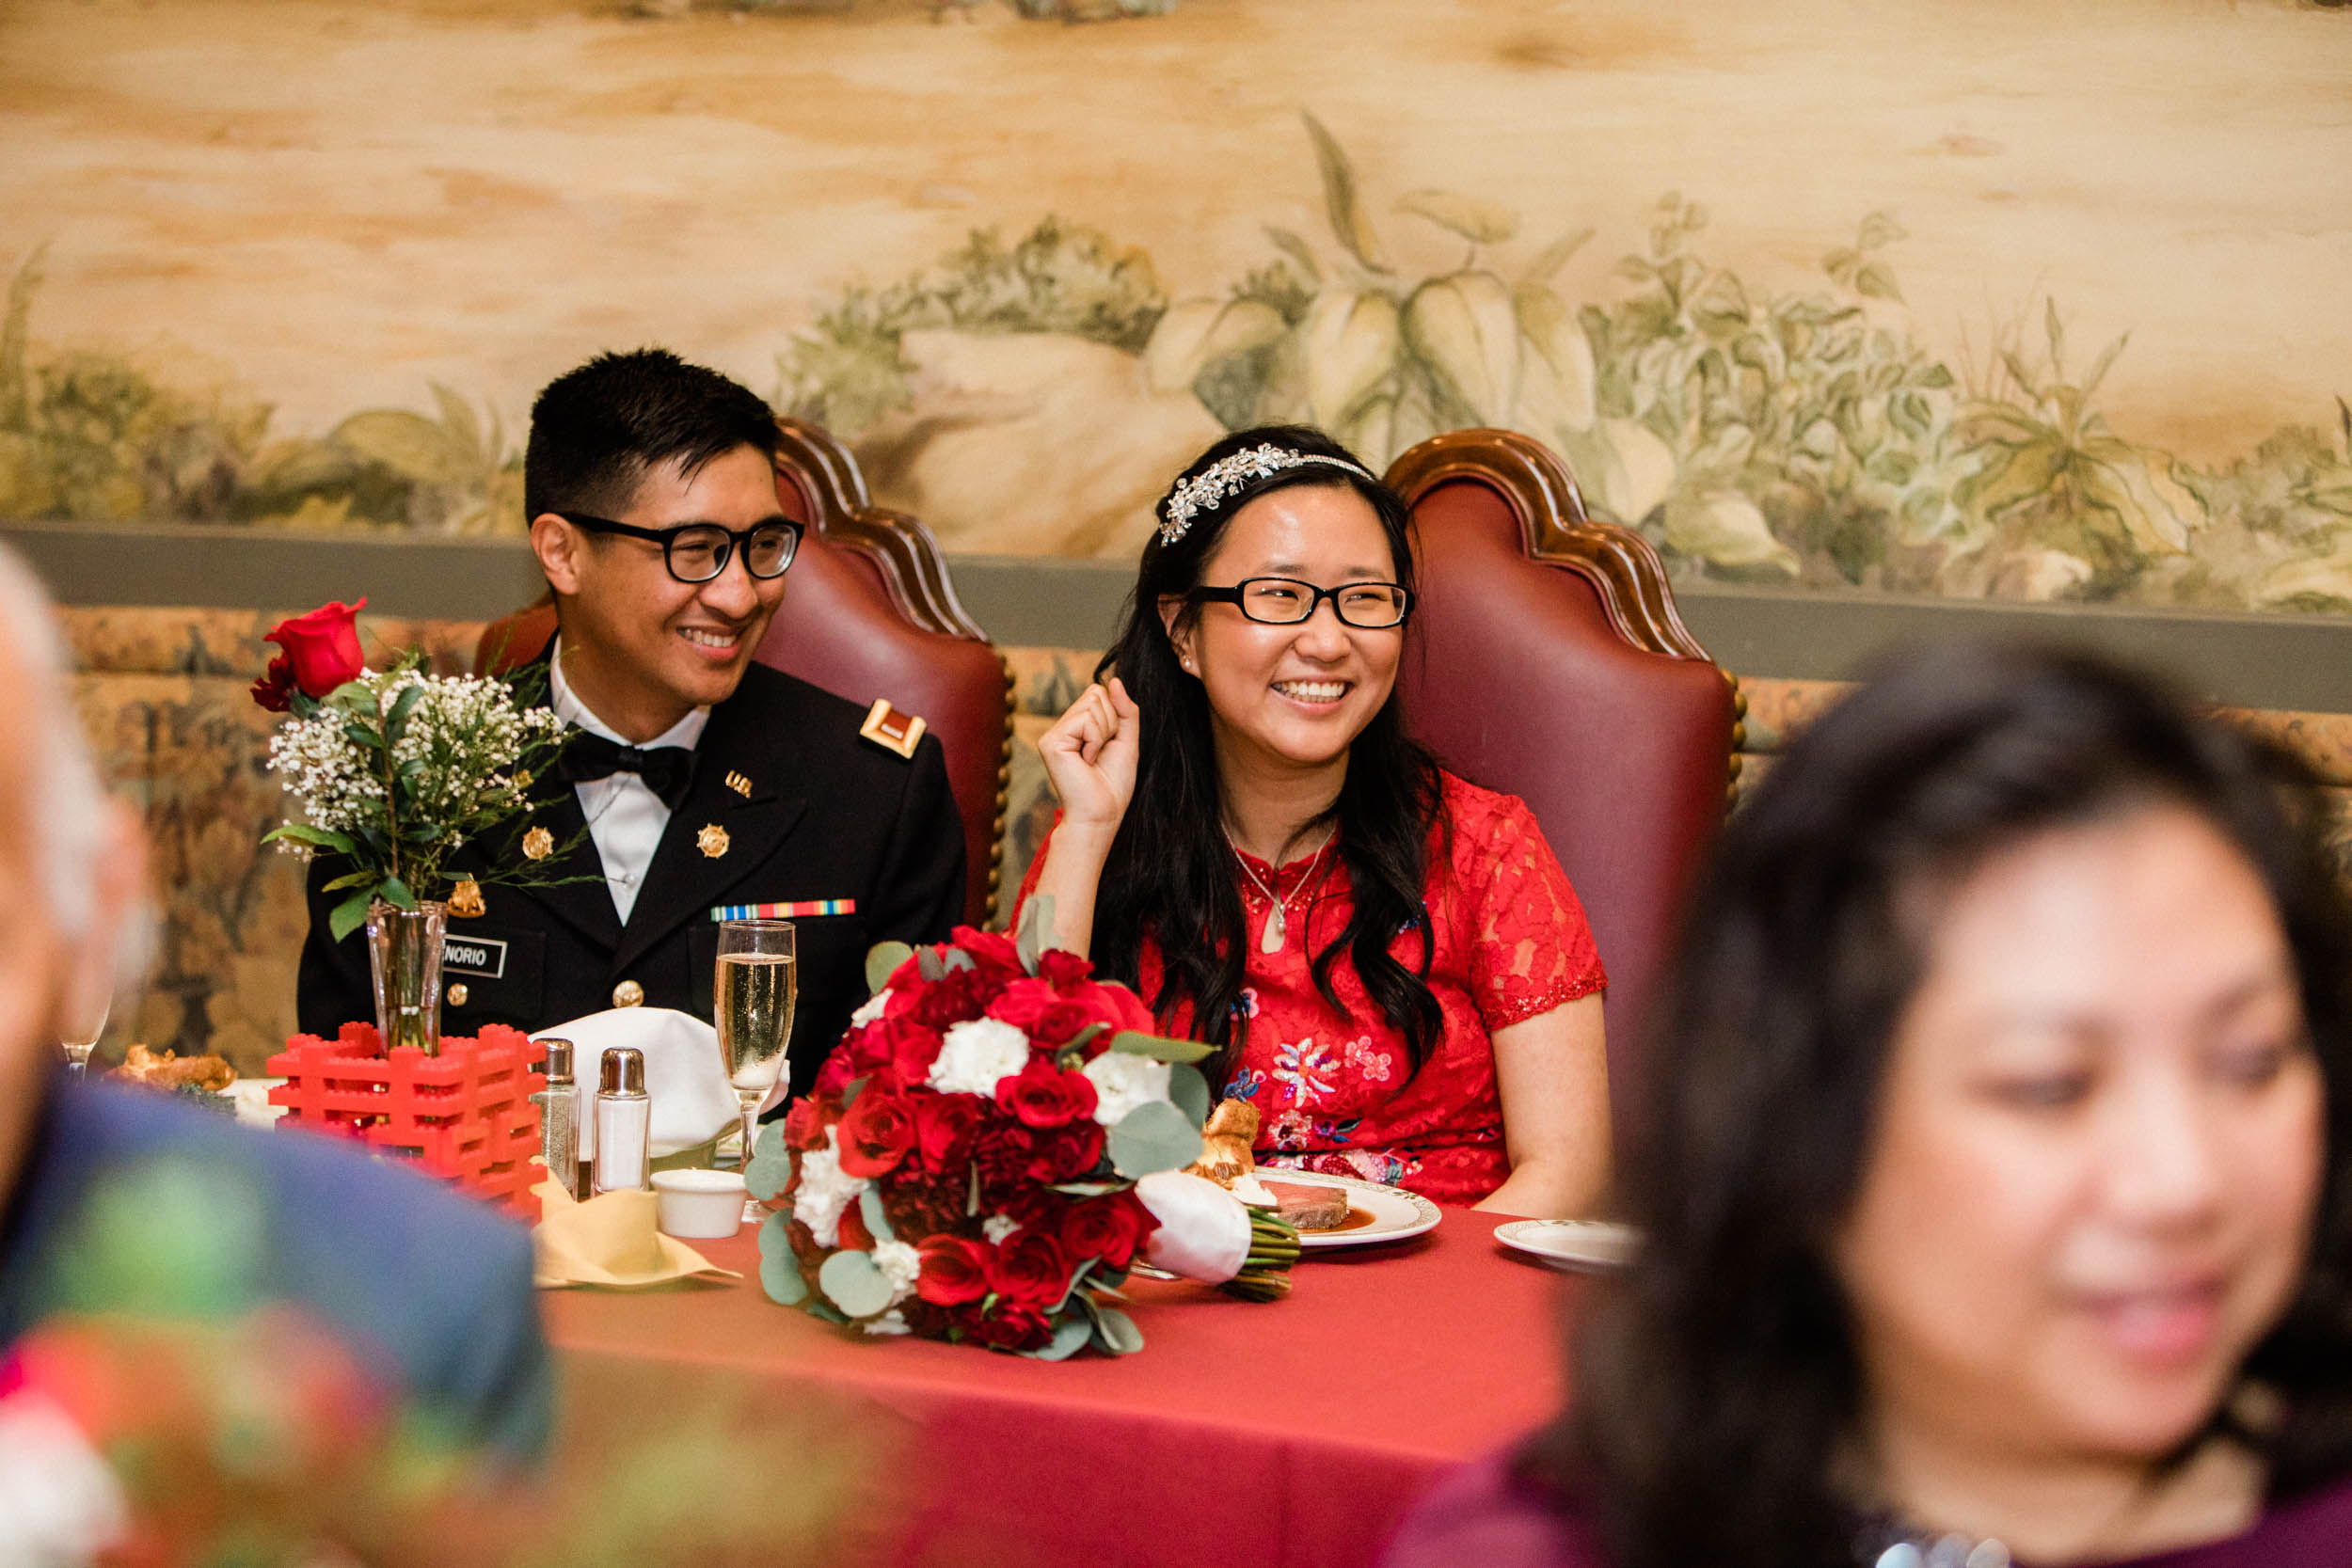 BKM-Photography-Lawrys-The-Prime-Rib-Wedding-Photographer-1058.jpg